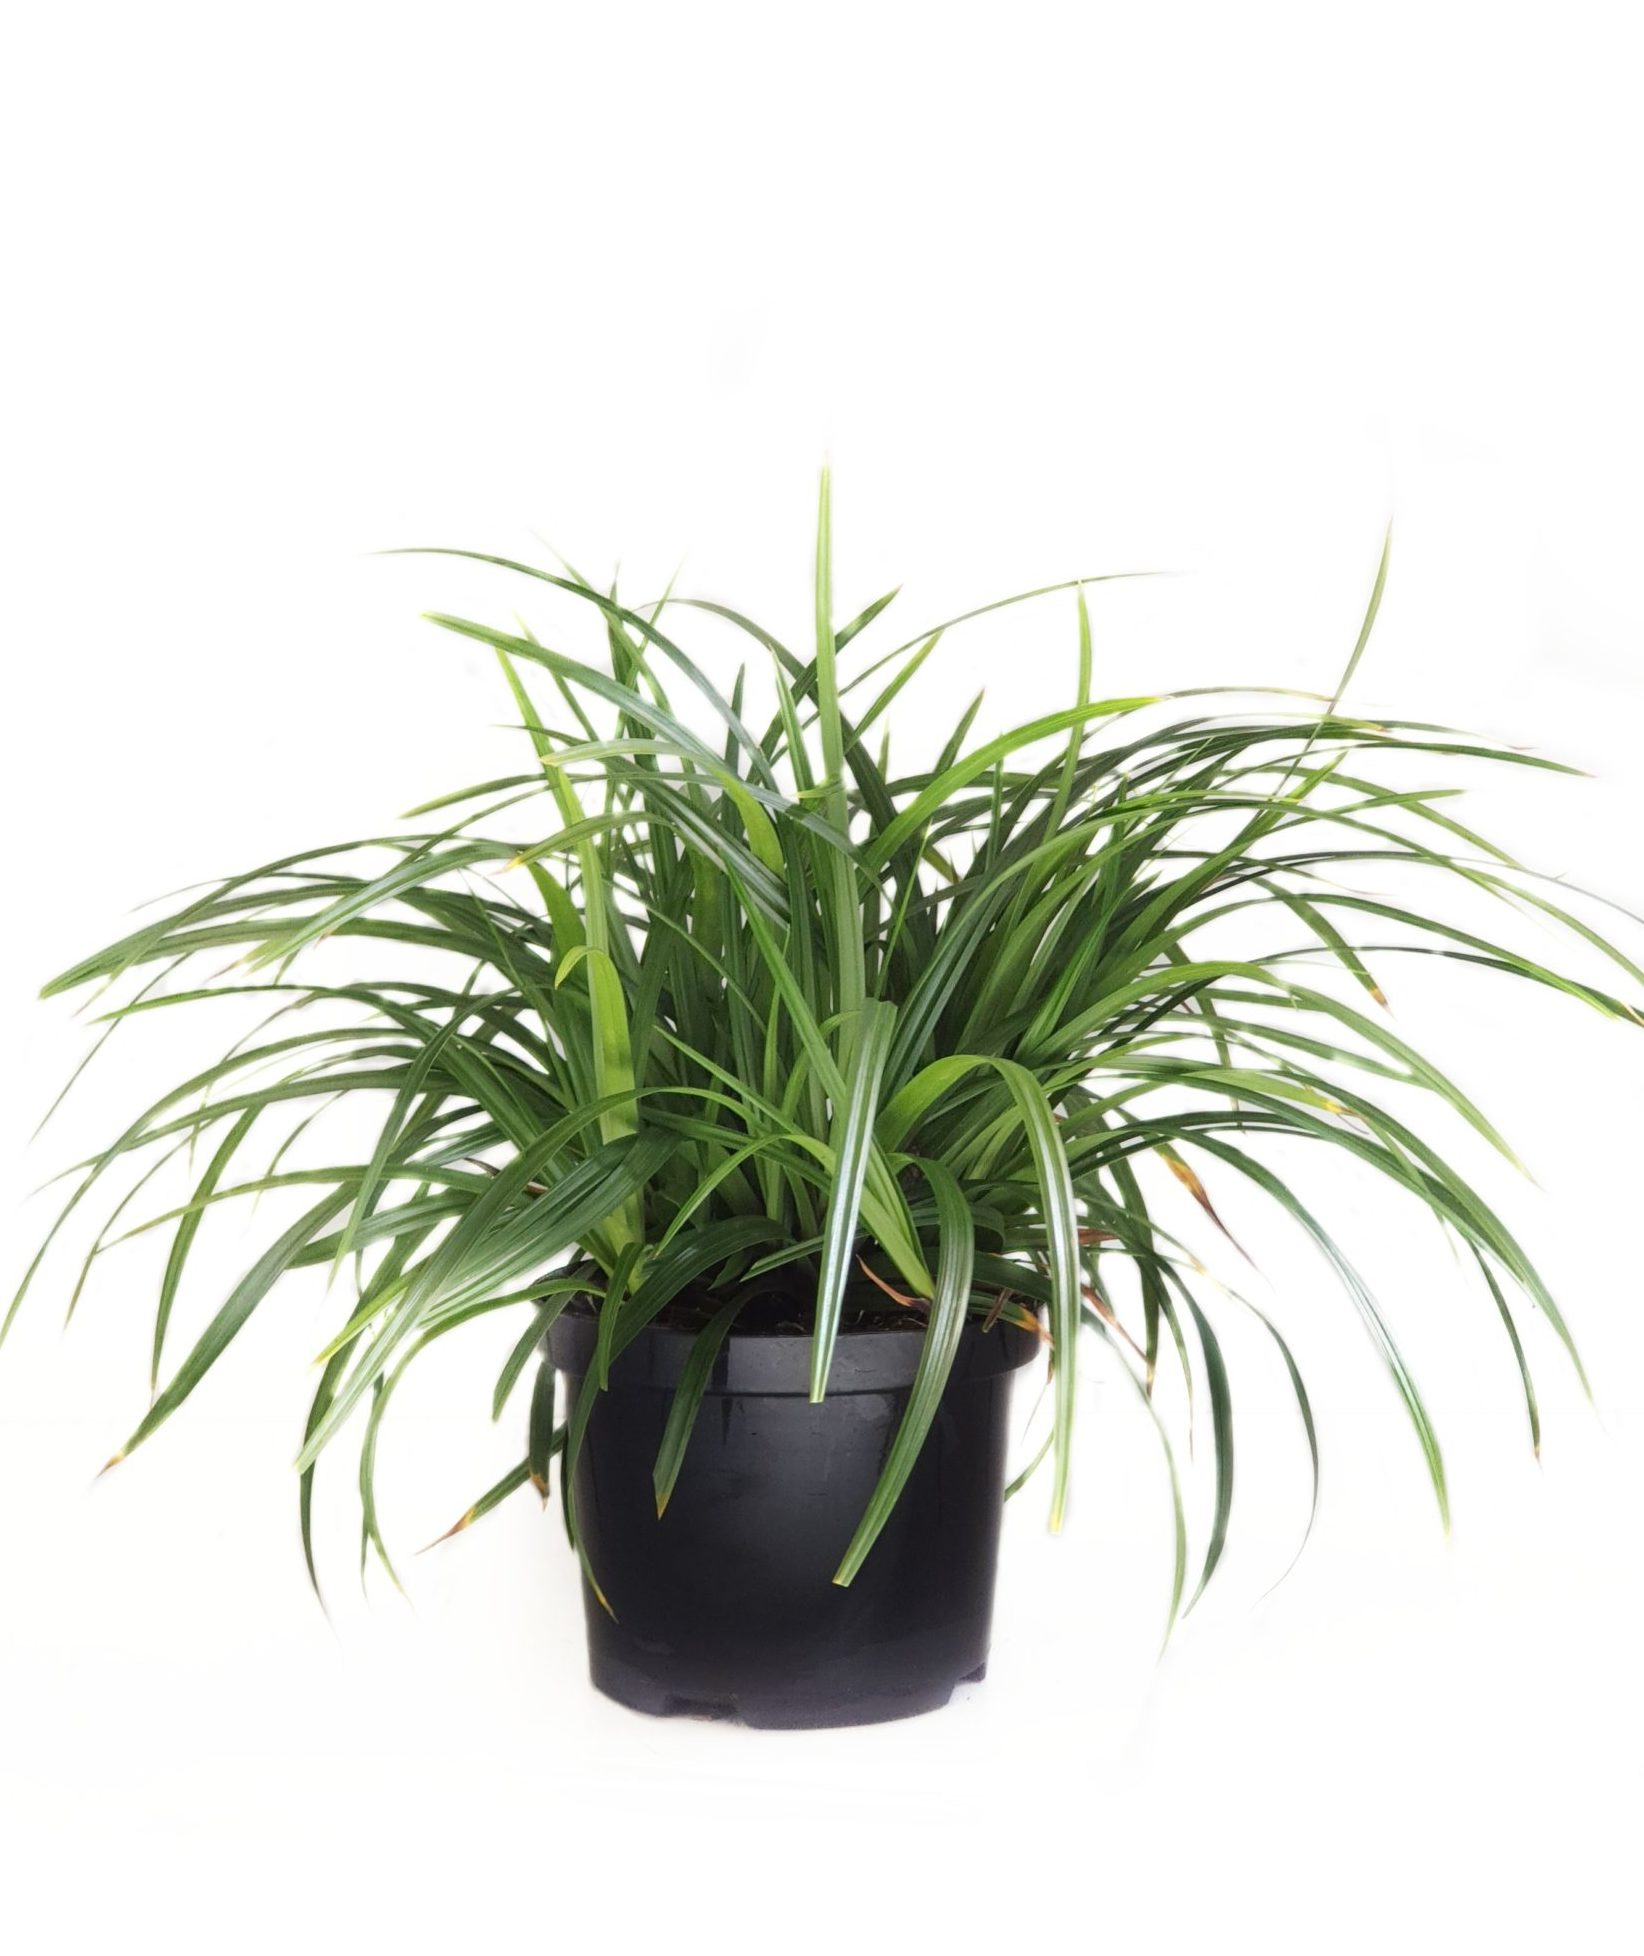 Carex 'Irish Green' pot 2 liter